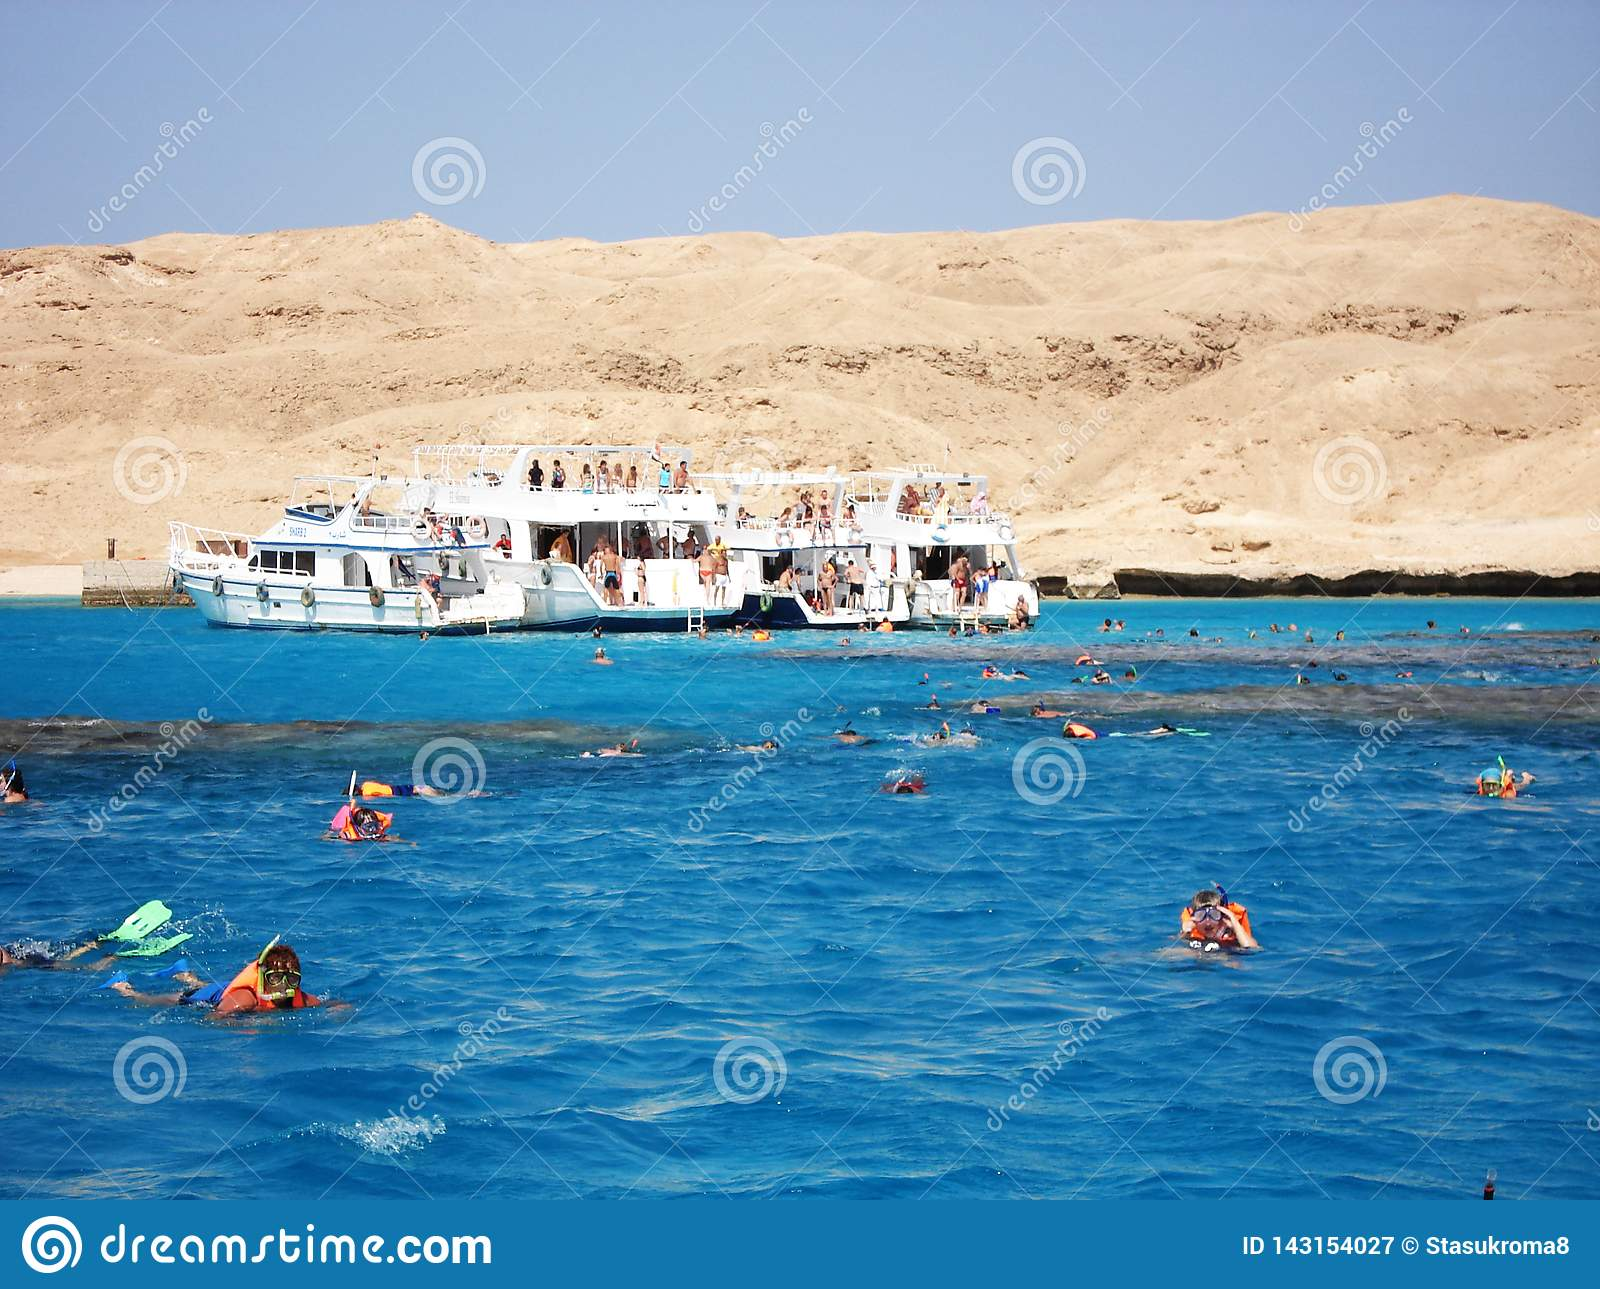 Luxor, Egypt. May 25, 2013. Beach. Boat. boat on the shore. Tourists. Yacht